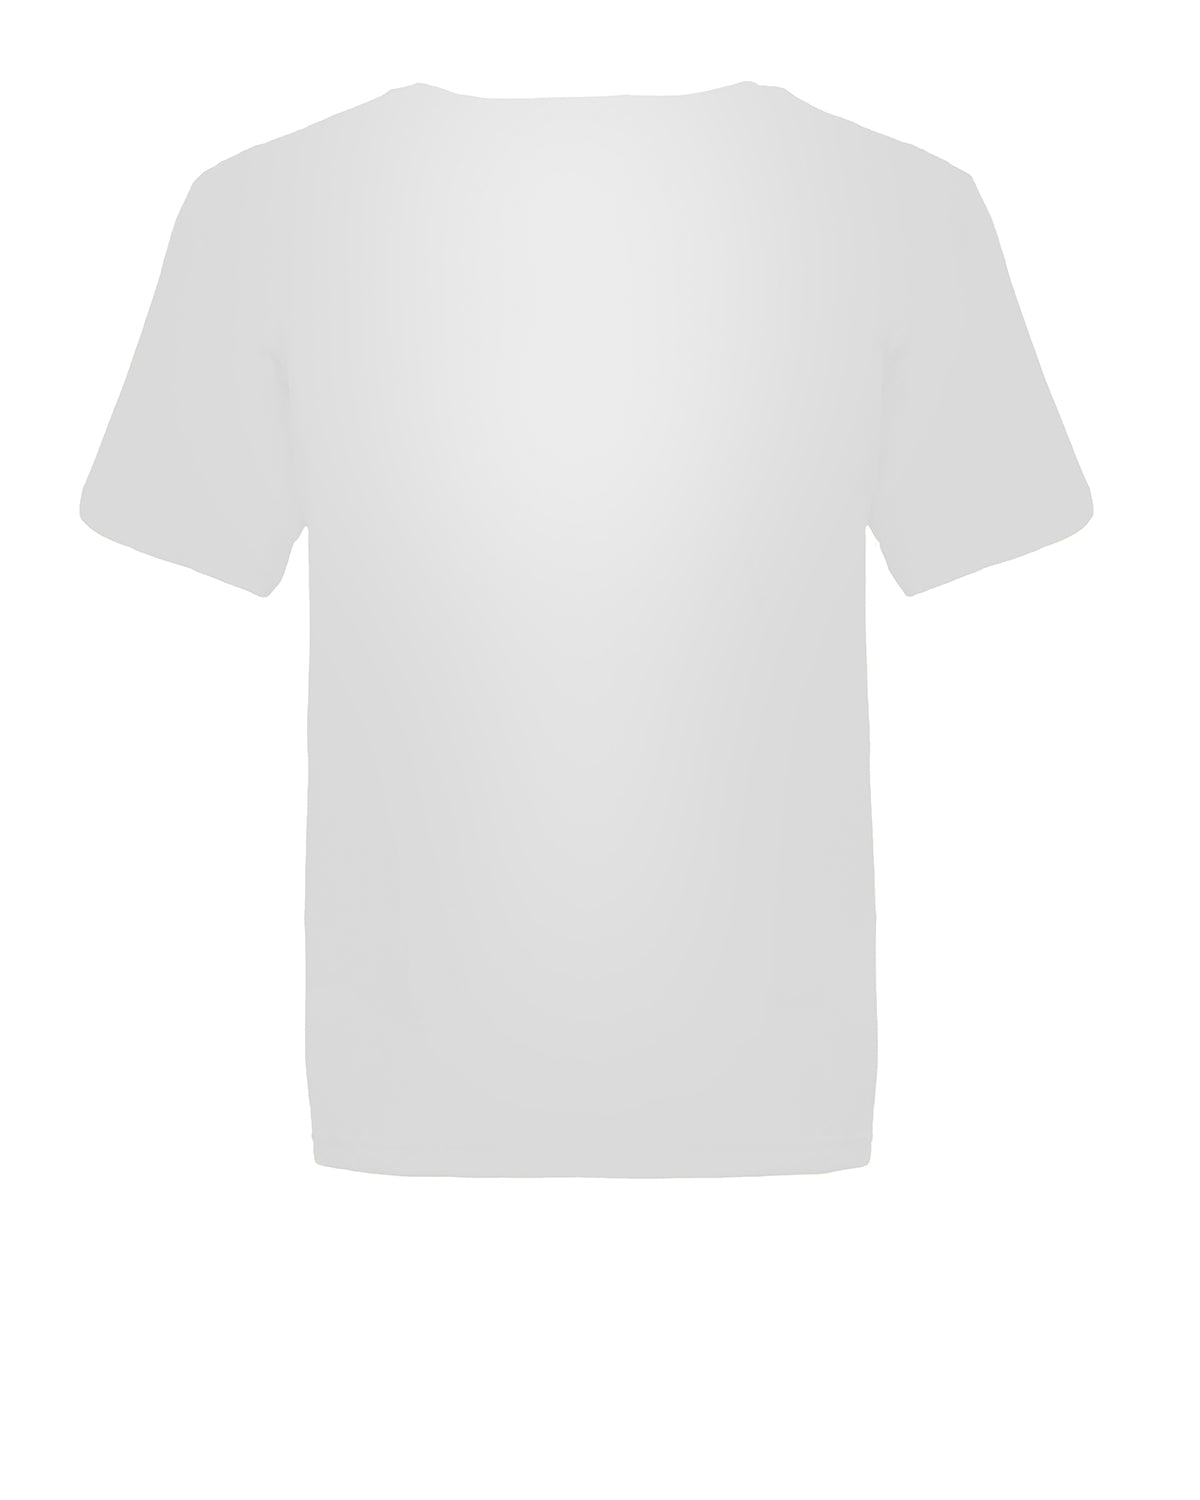 B&L Blank Canvas Toddler Tee